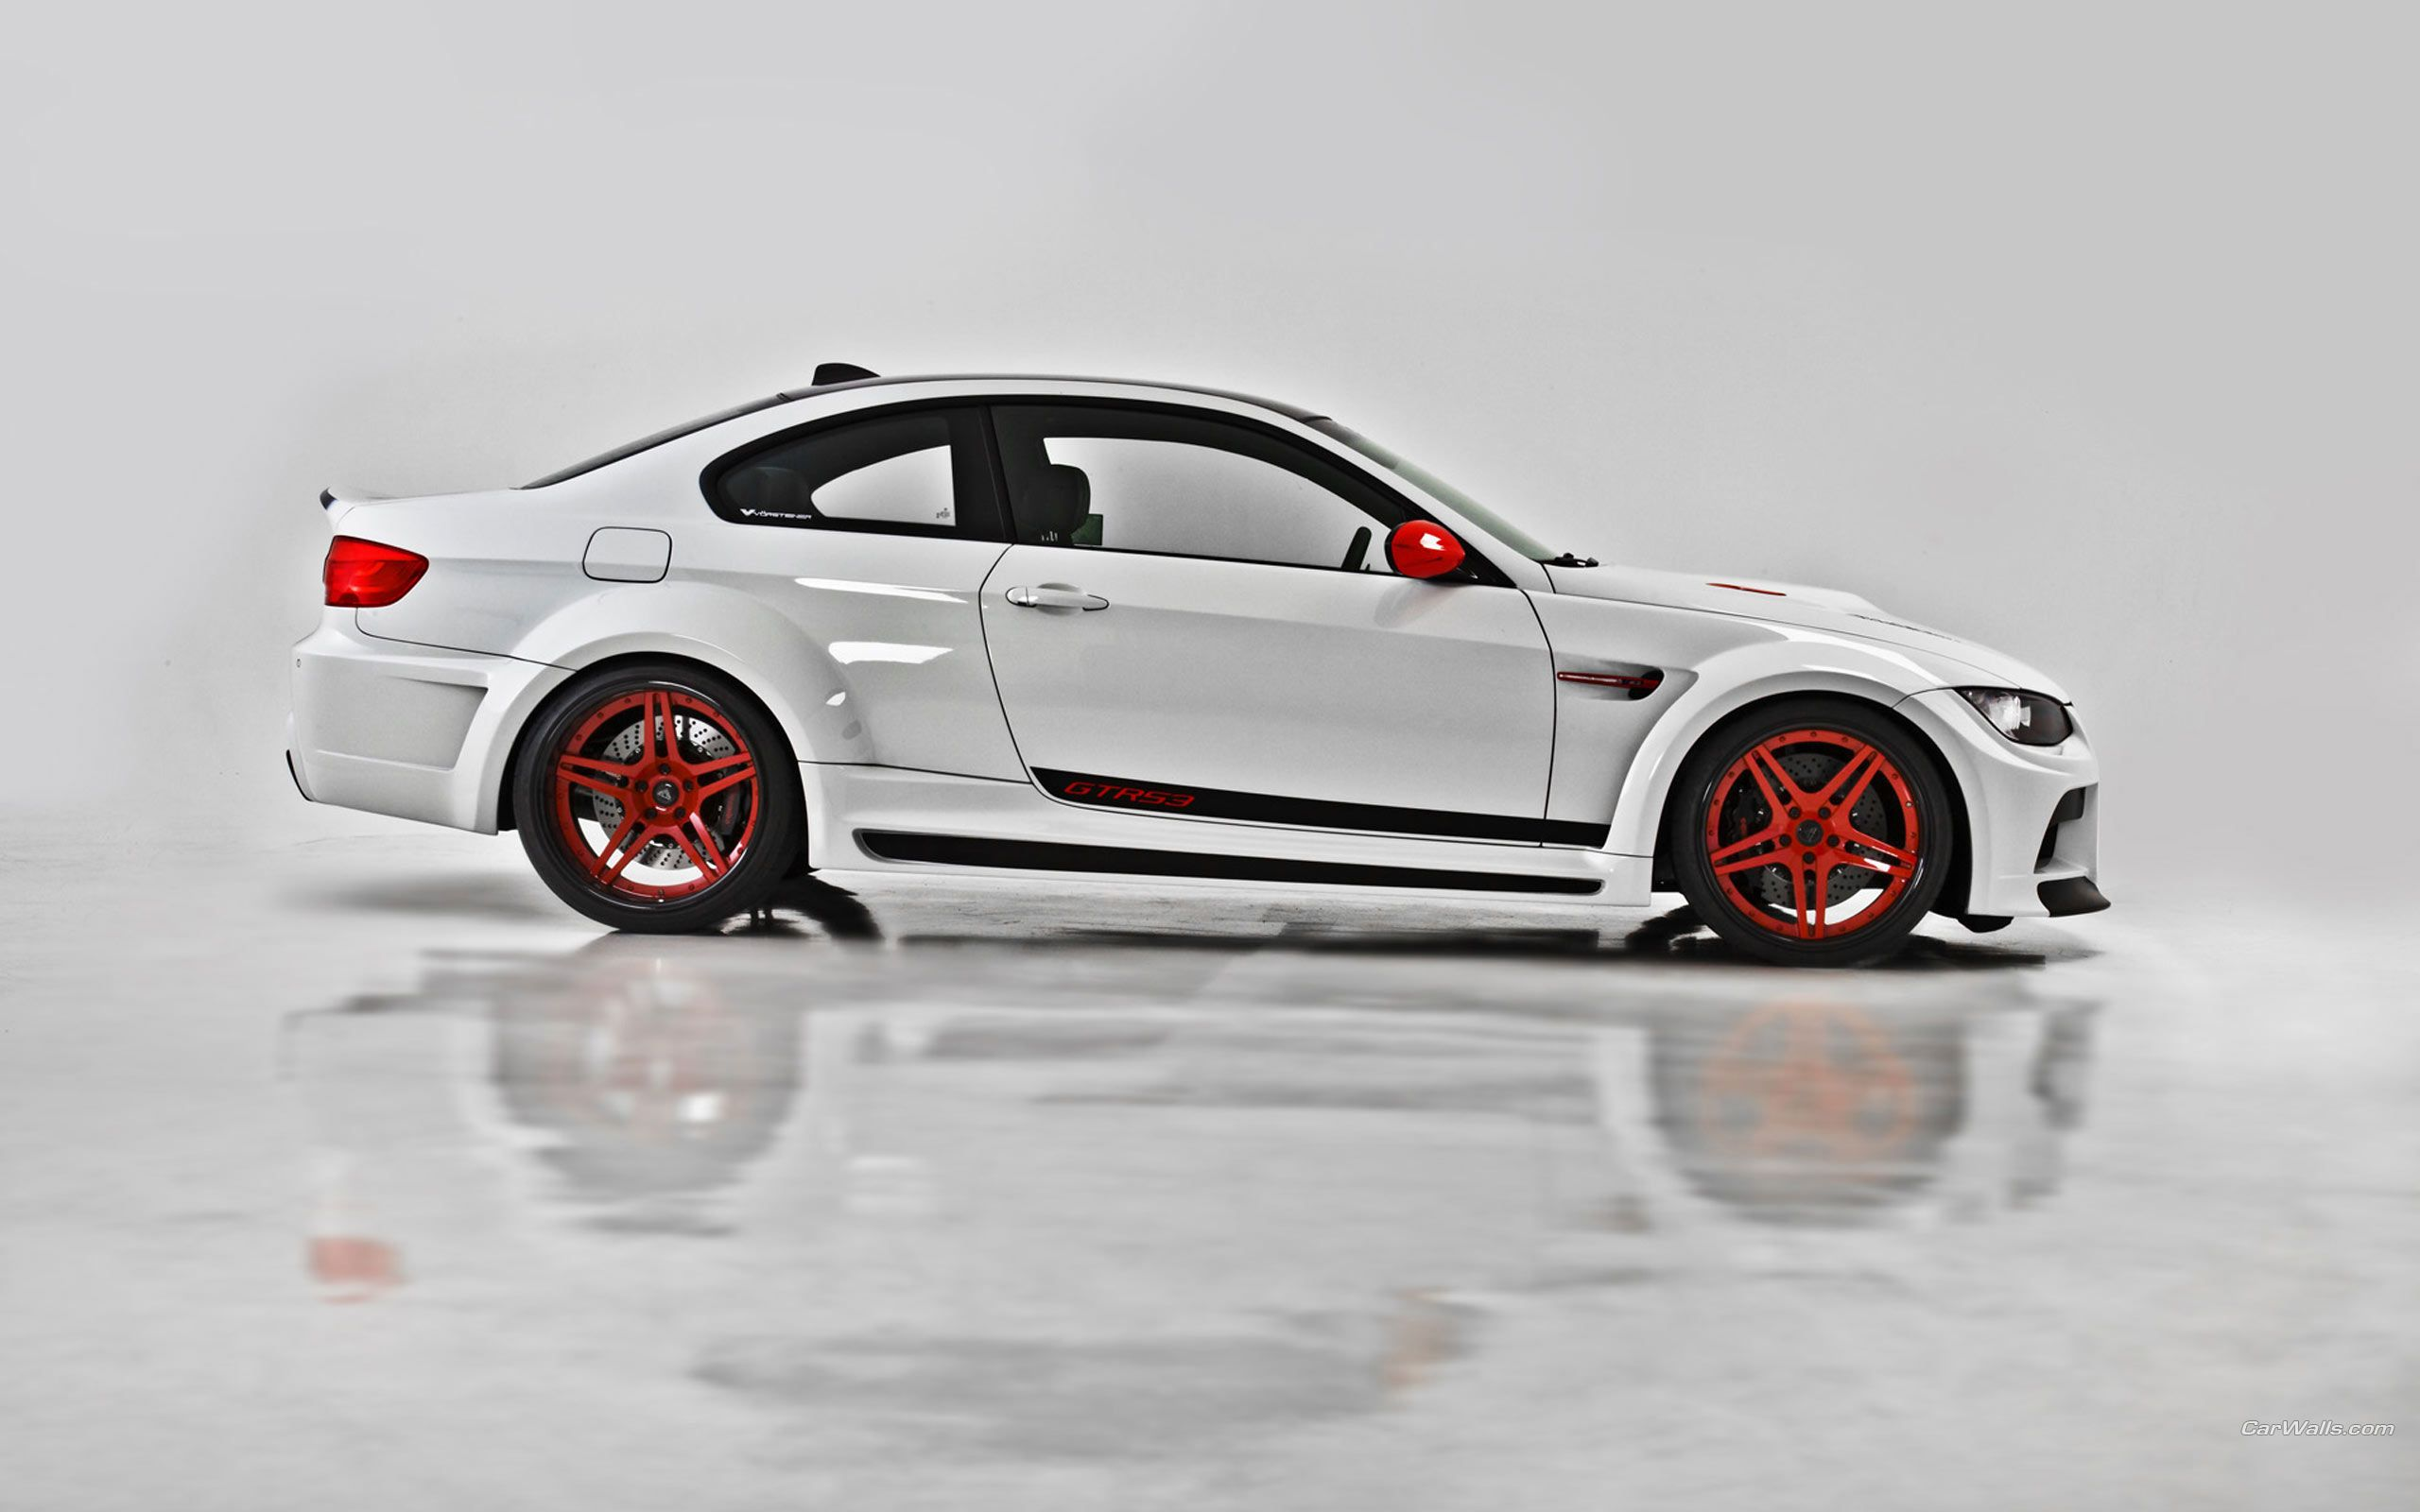 Bmw white with red accents m3